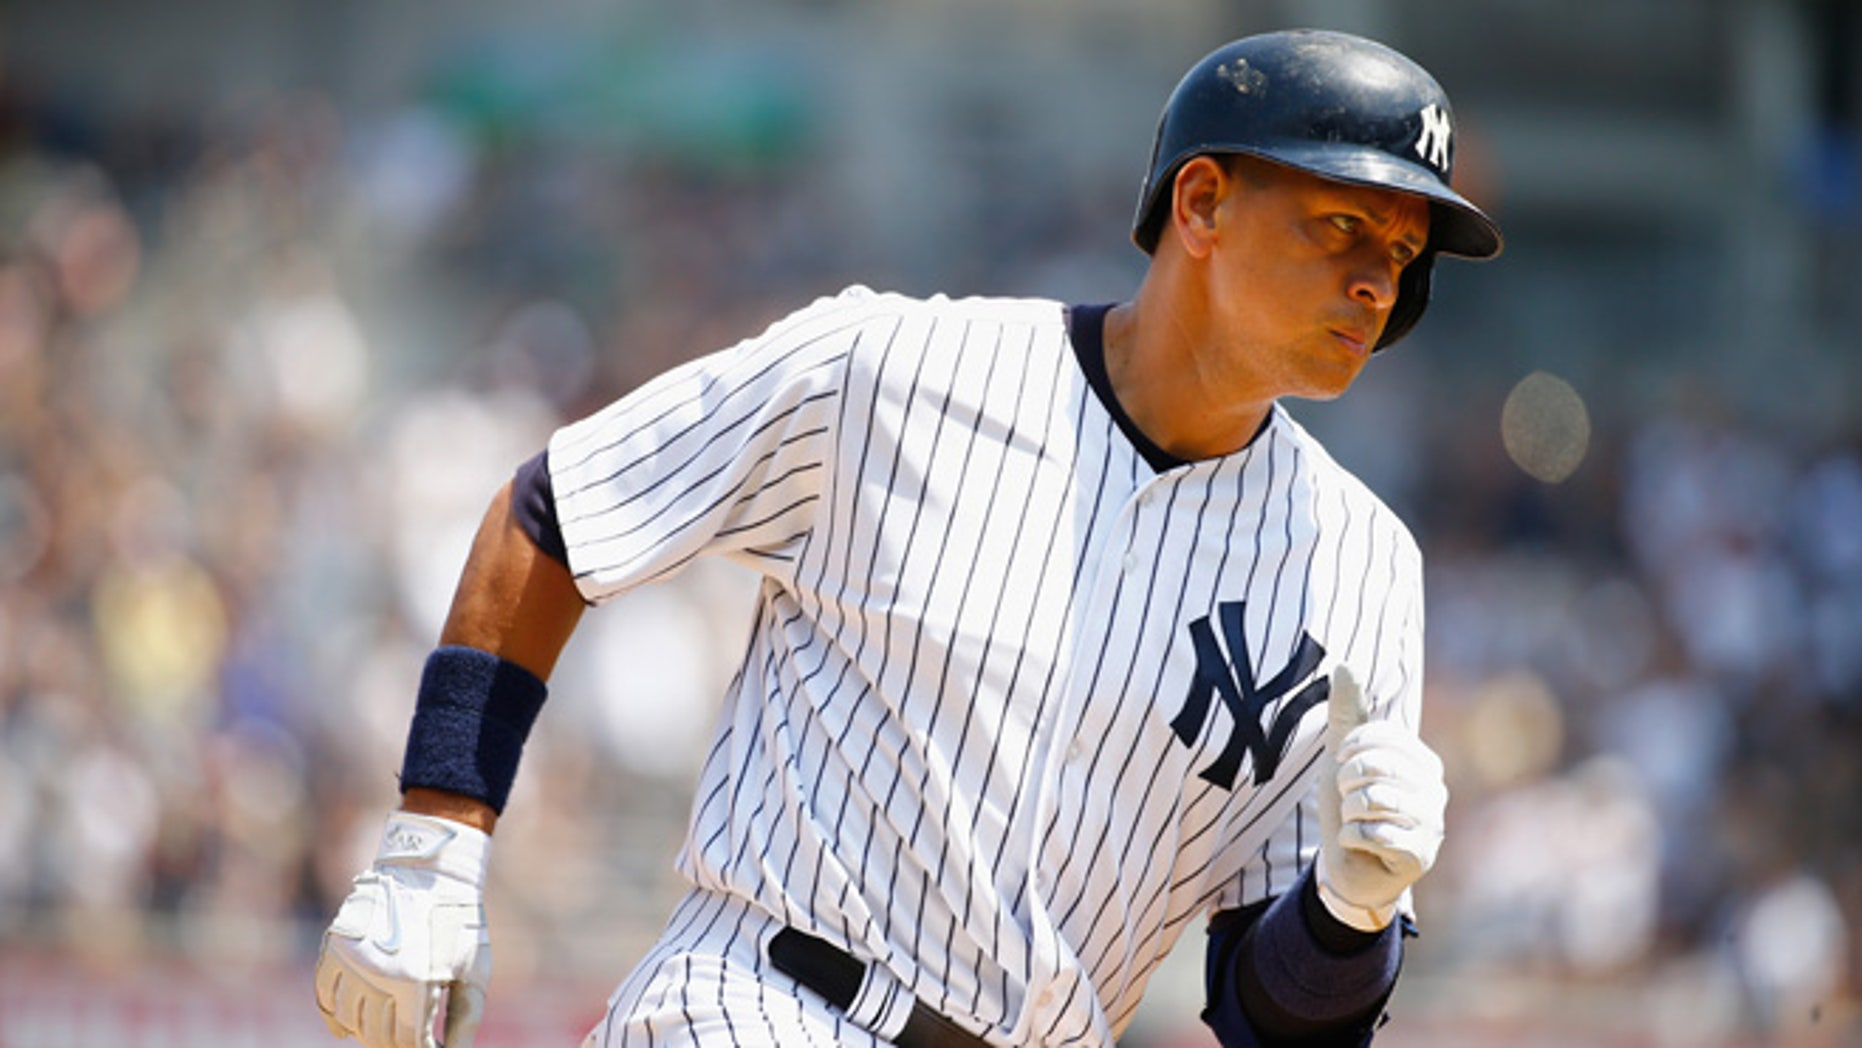 NEW YORK, NY - MAY 27:  Alex Rodriguez #13 of the New York Yankees rounds the bases after hitting a three-run home run against Chris Young #32 of the Kansas City Royals in the third inning during their game at Yankee Stadium on May 27, 2015 in New York City.  Rodriguez's three-run home run gave him 1,995 RBIs, moving him past Lou Gehrig on the all-time RBI list. (Photo by Al Bello/Getty Images)